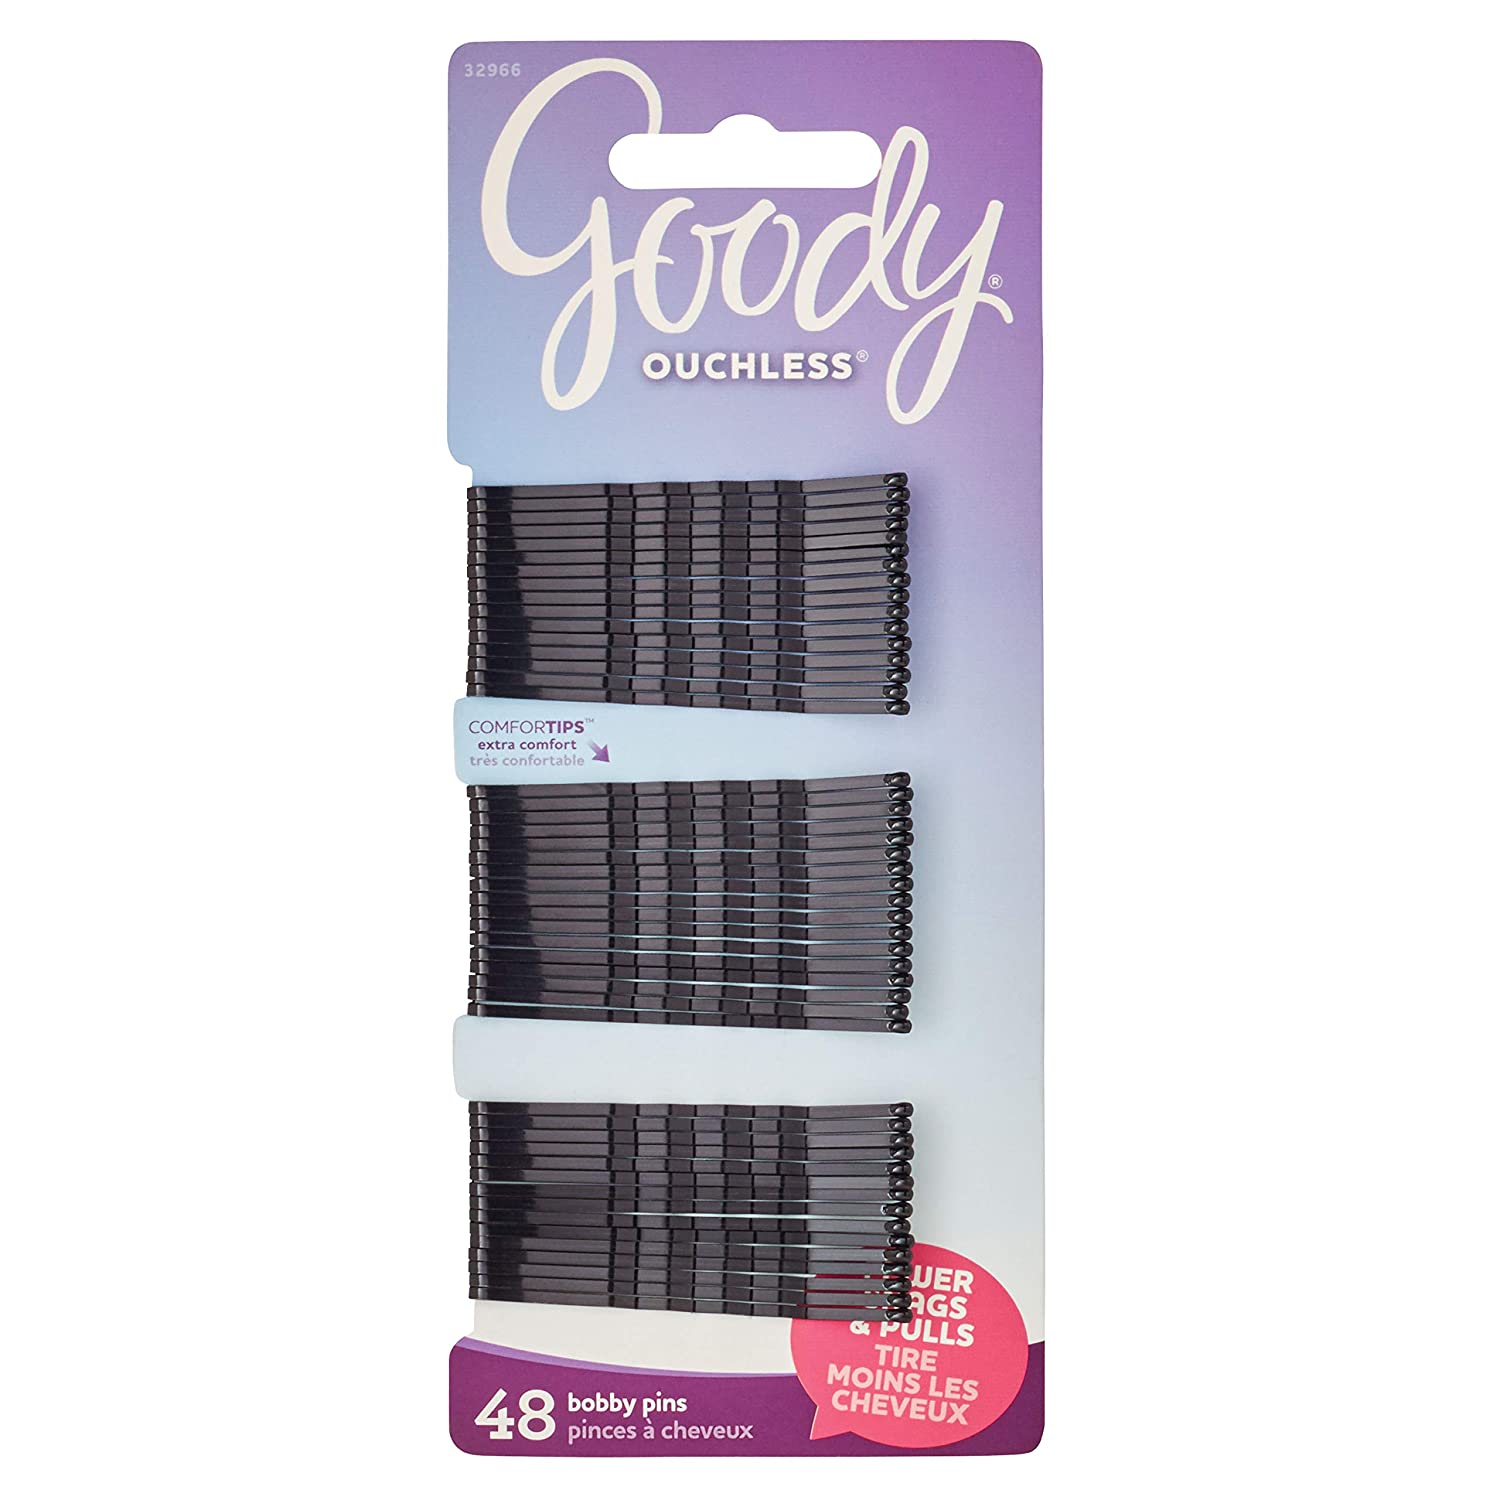 Goody Ouchless Bobby Pin, Crimped Black, 2 Inches, 48 Count (Pack of 1) : Hair Pins : Beauty